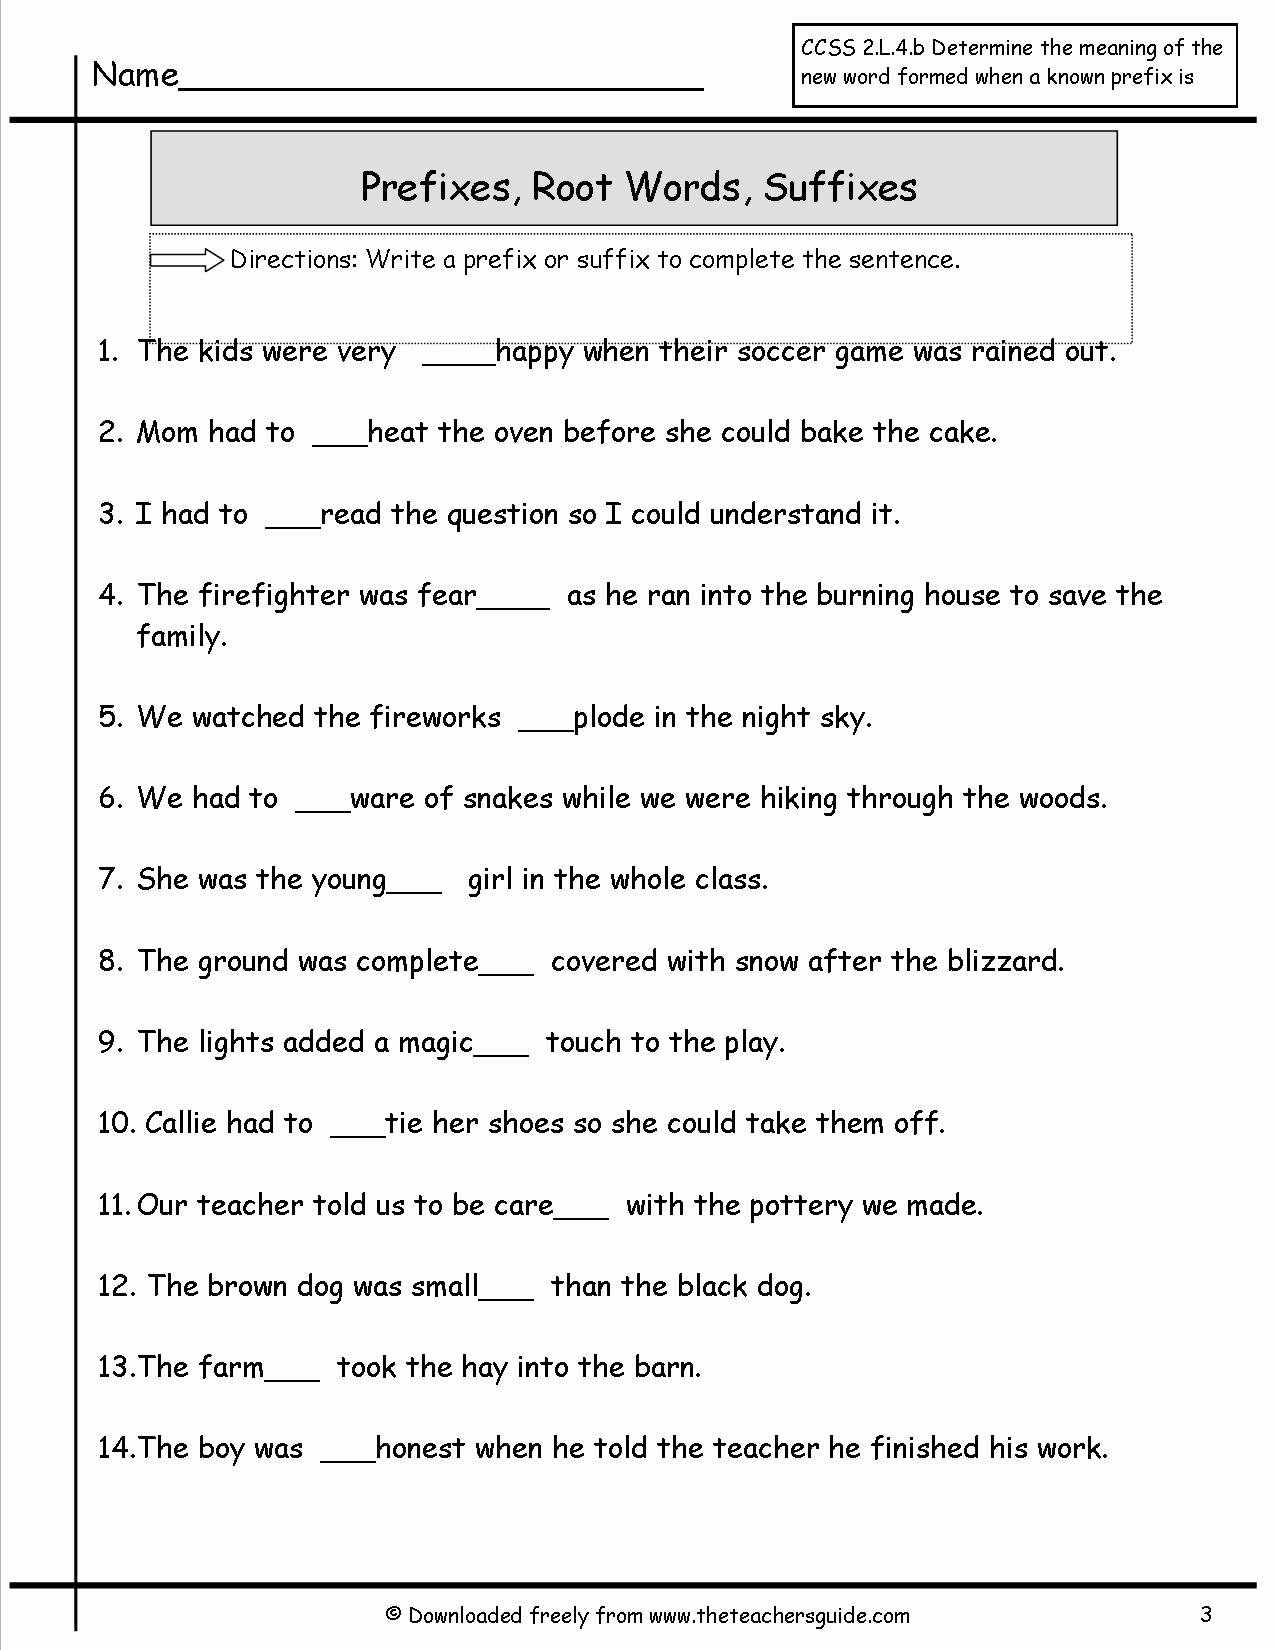 50 Prefixes And Suffixes Worksheet